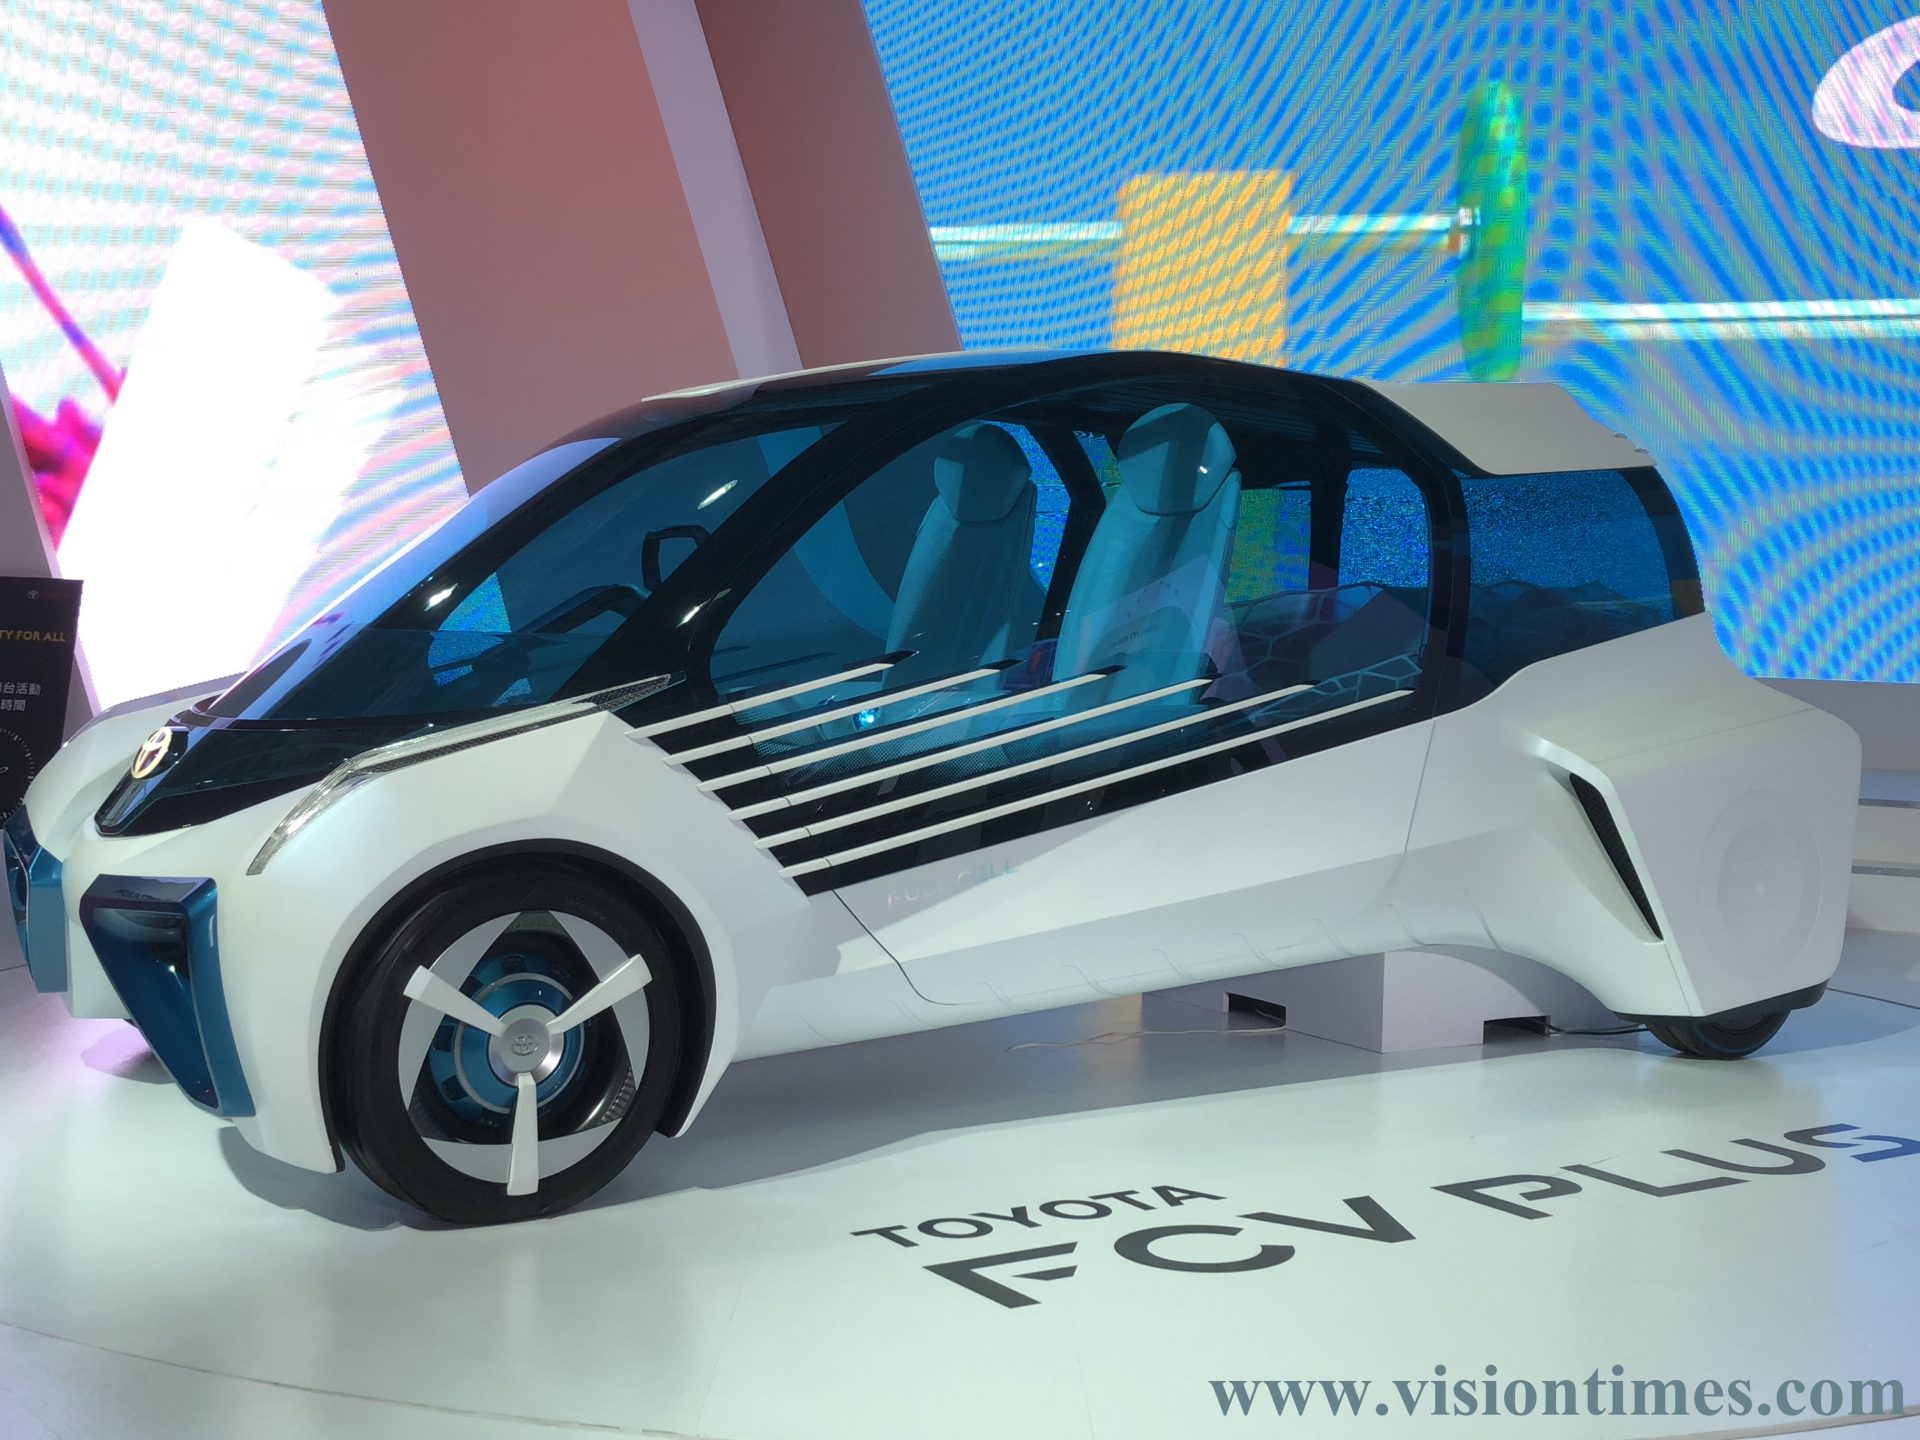 A next generation fuel cell vehicle (FCV) displayed at the 2018 Taipei International Auto Show (Image: Billy Shyu / Billy Shyu)